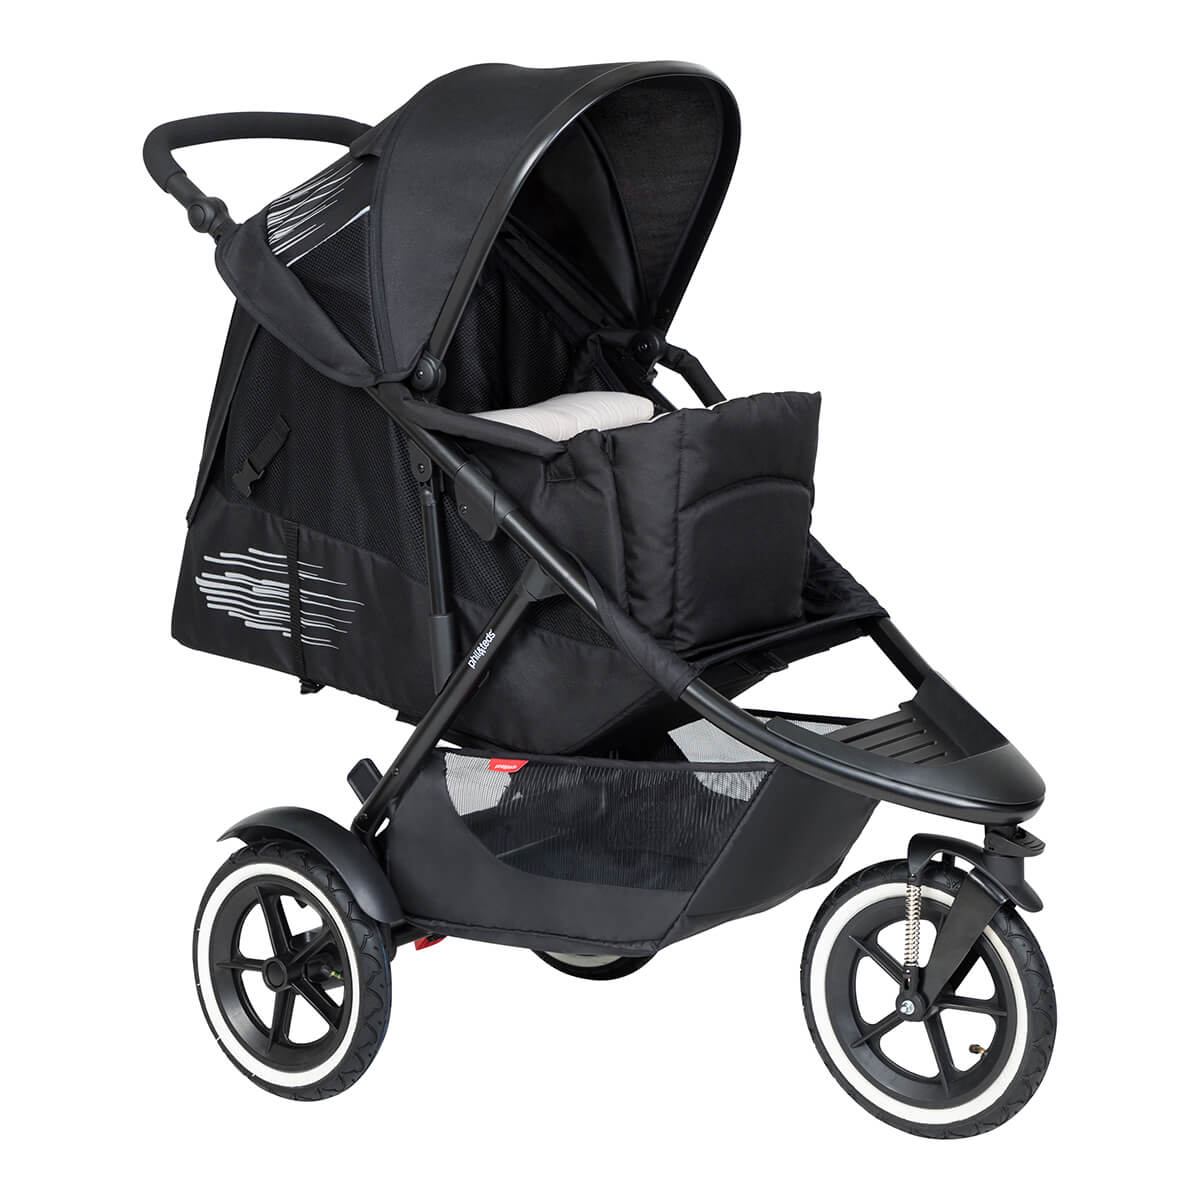 https://cdn.accentuate.io/4546157969513/19119322529897/philteds-sport-buggy-with-cocoon-full-recline-v1625778325009.jpg?1200x1200